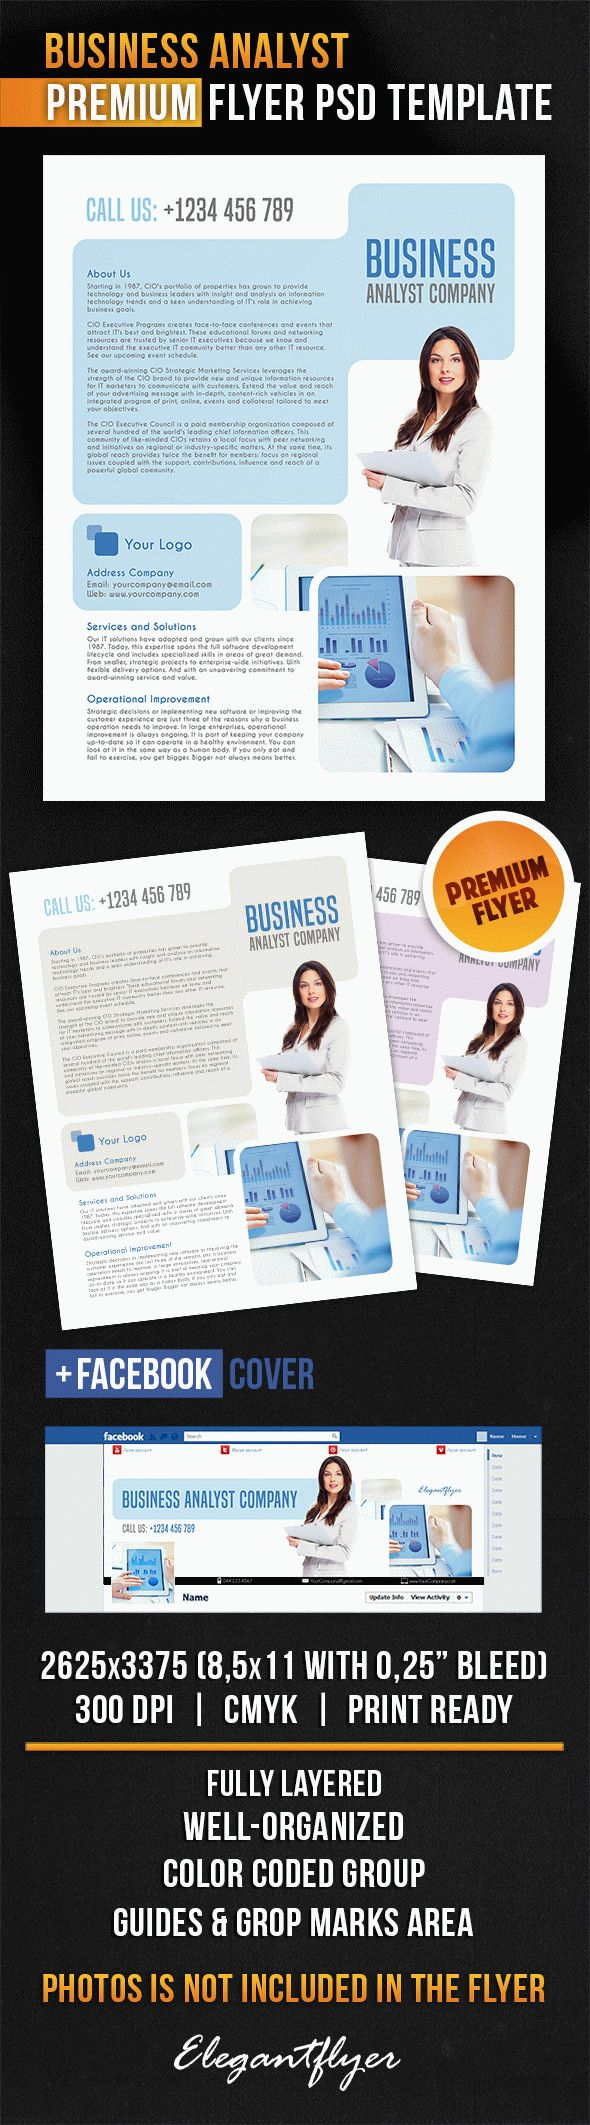 Business Analyst – Flyer PSD Template + Facebook Cover